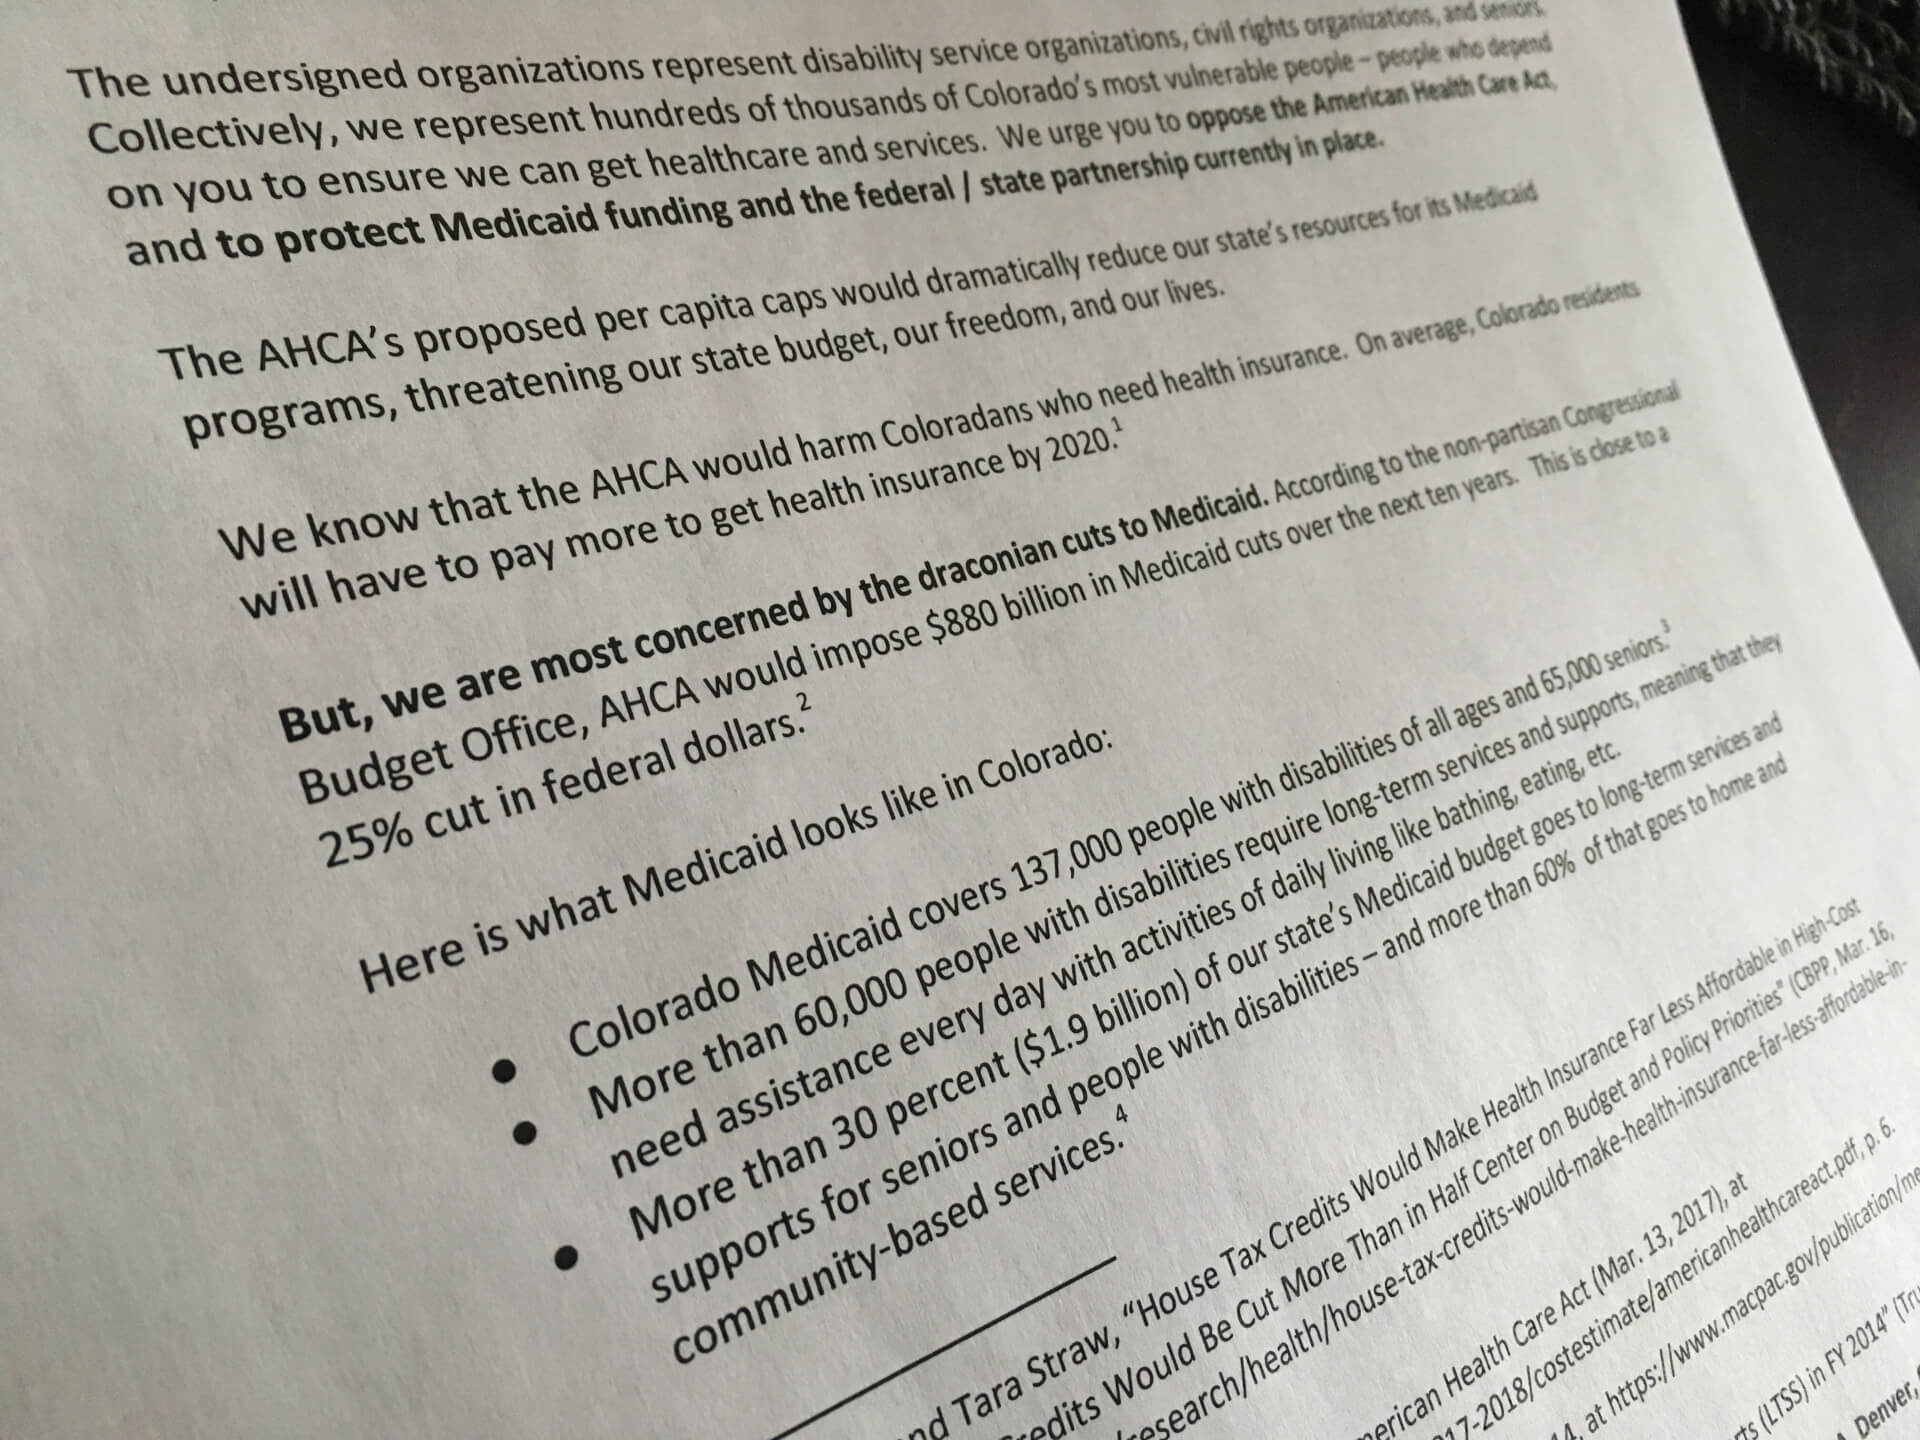 Letter outlines how the AHCA would affect Coloradans with